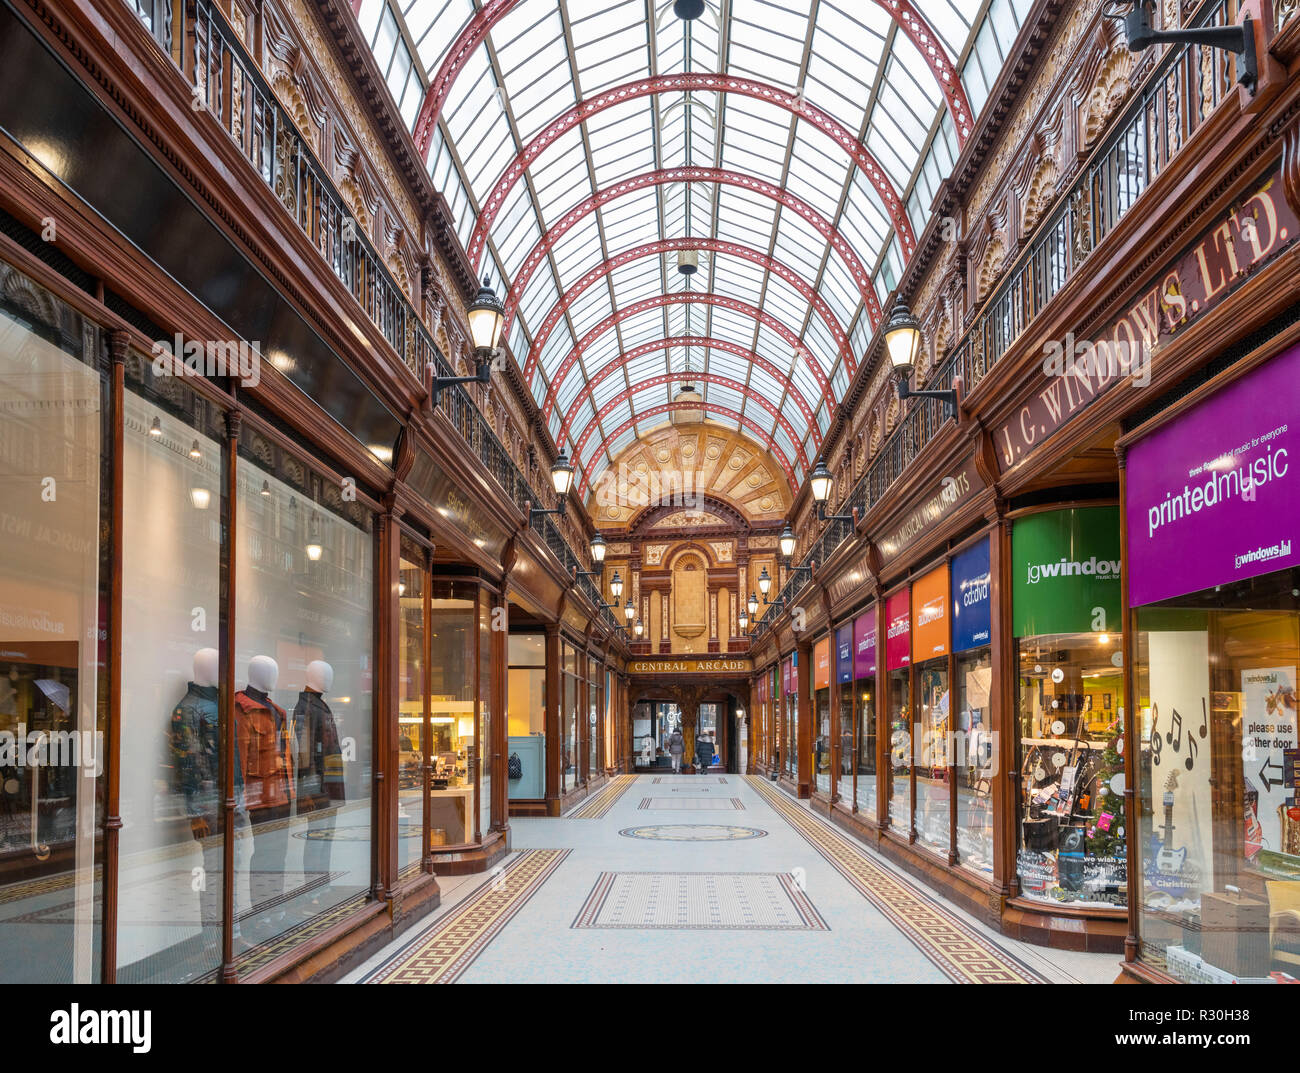 Shops in the Edwardian Central Arcade, Newcastle upon Tyne, Tyne and Wear, England, UK - Stock Image